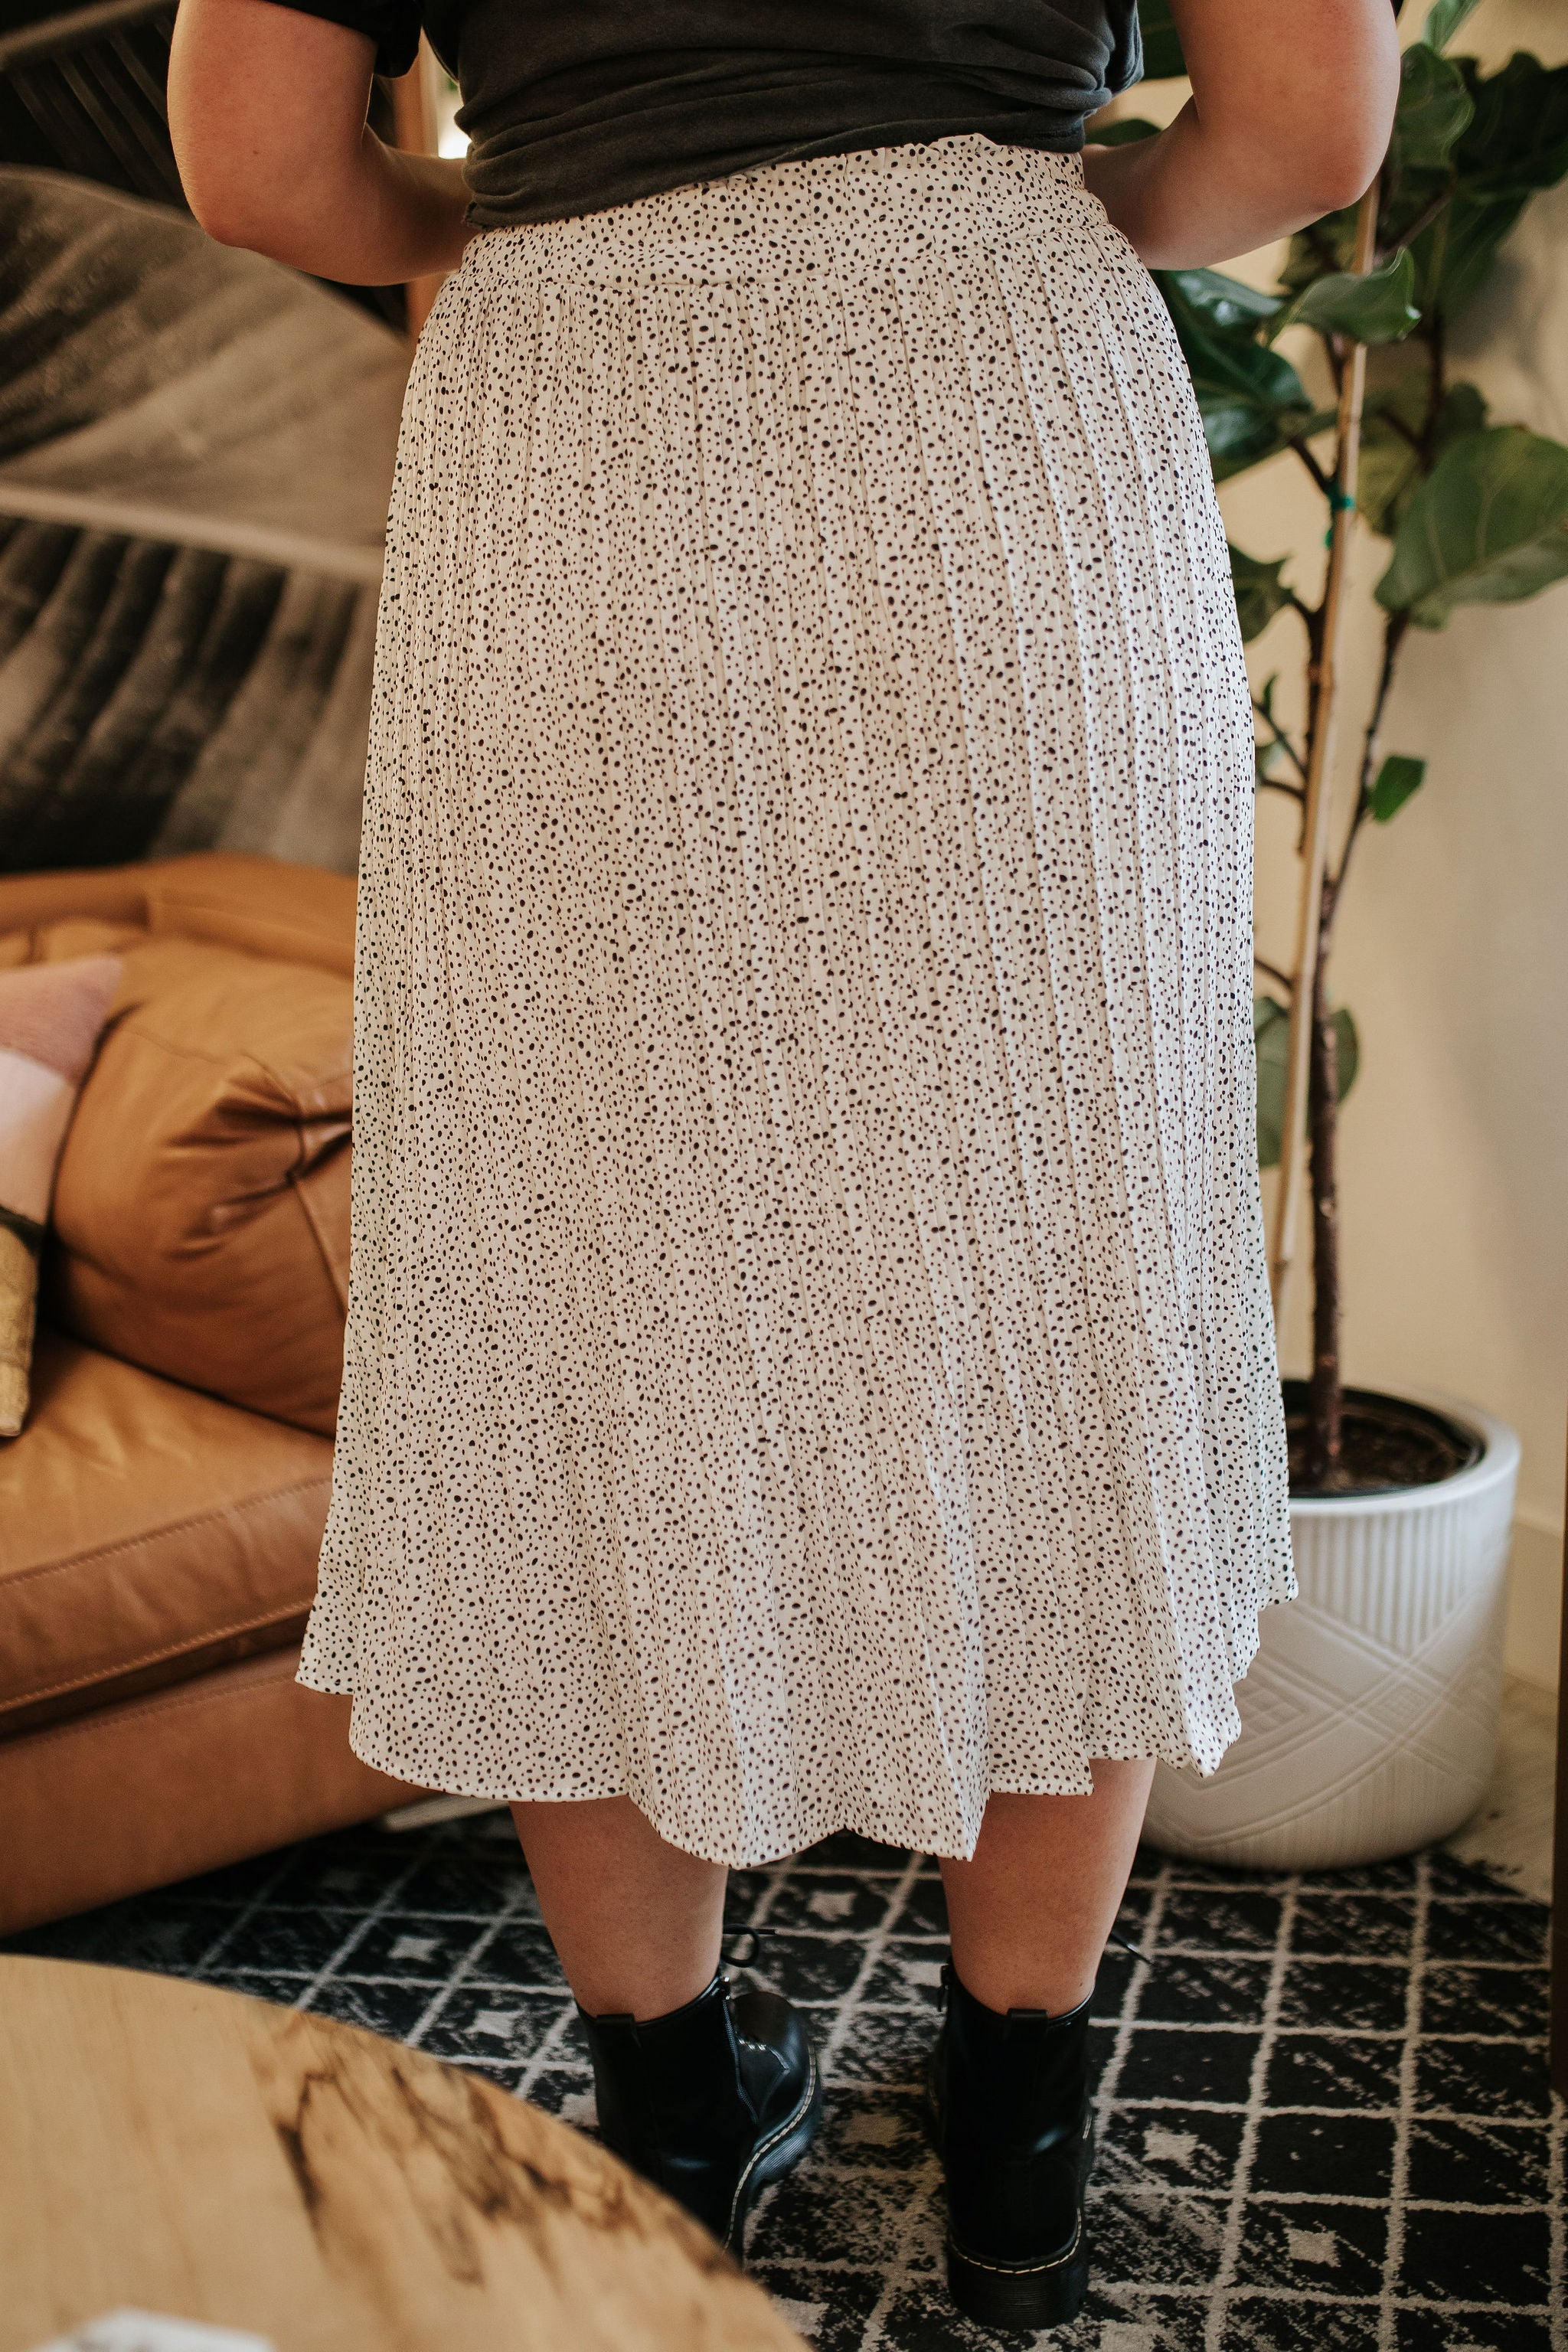 THE SHEANA SPOTTED PLEATED SKIRT IN IVORY